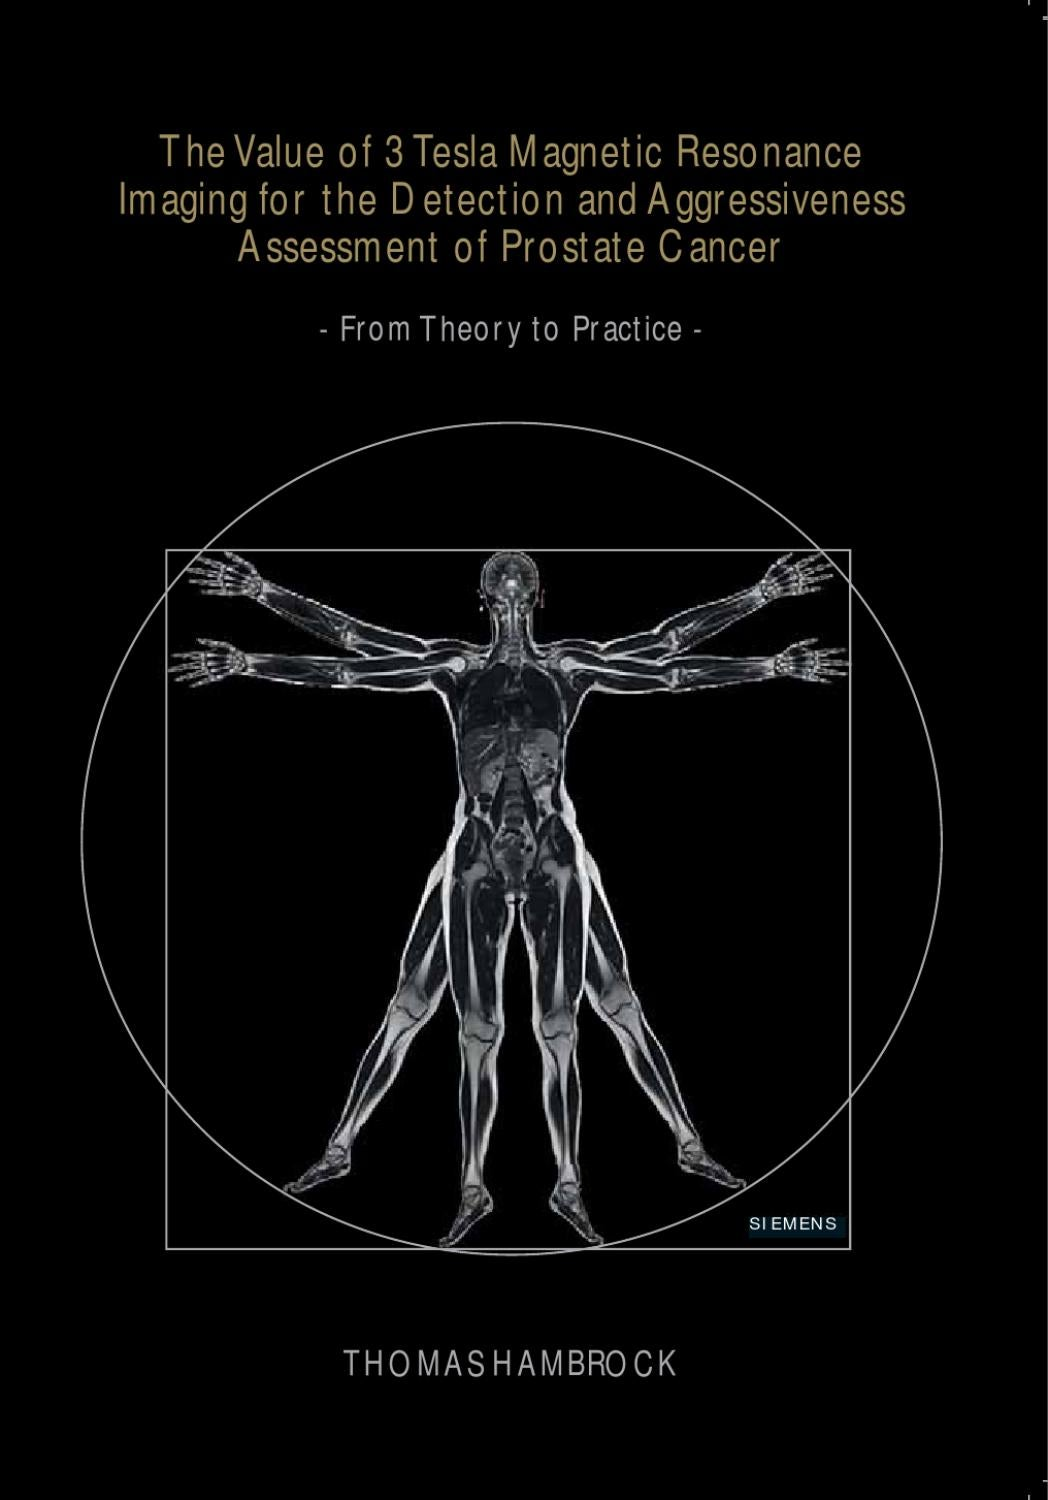 prostate cancer essay thesis Chapter 15: the anus, rectum, and prostate chapter 15: the anus we will write a custom essay sample on prostate cancer.